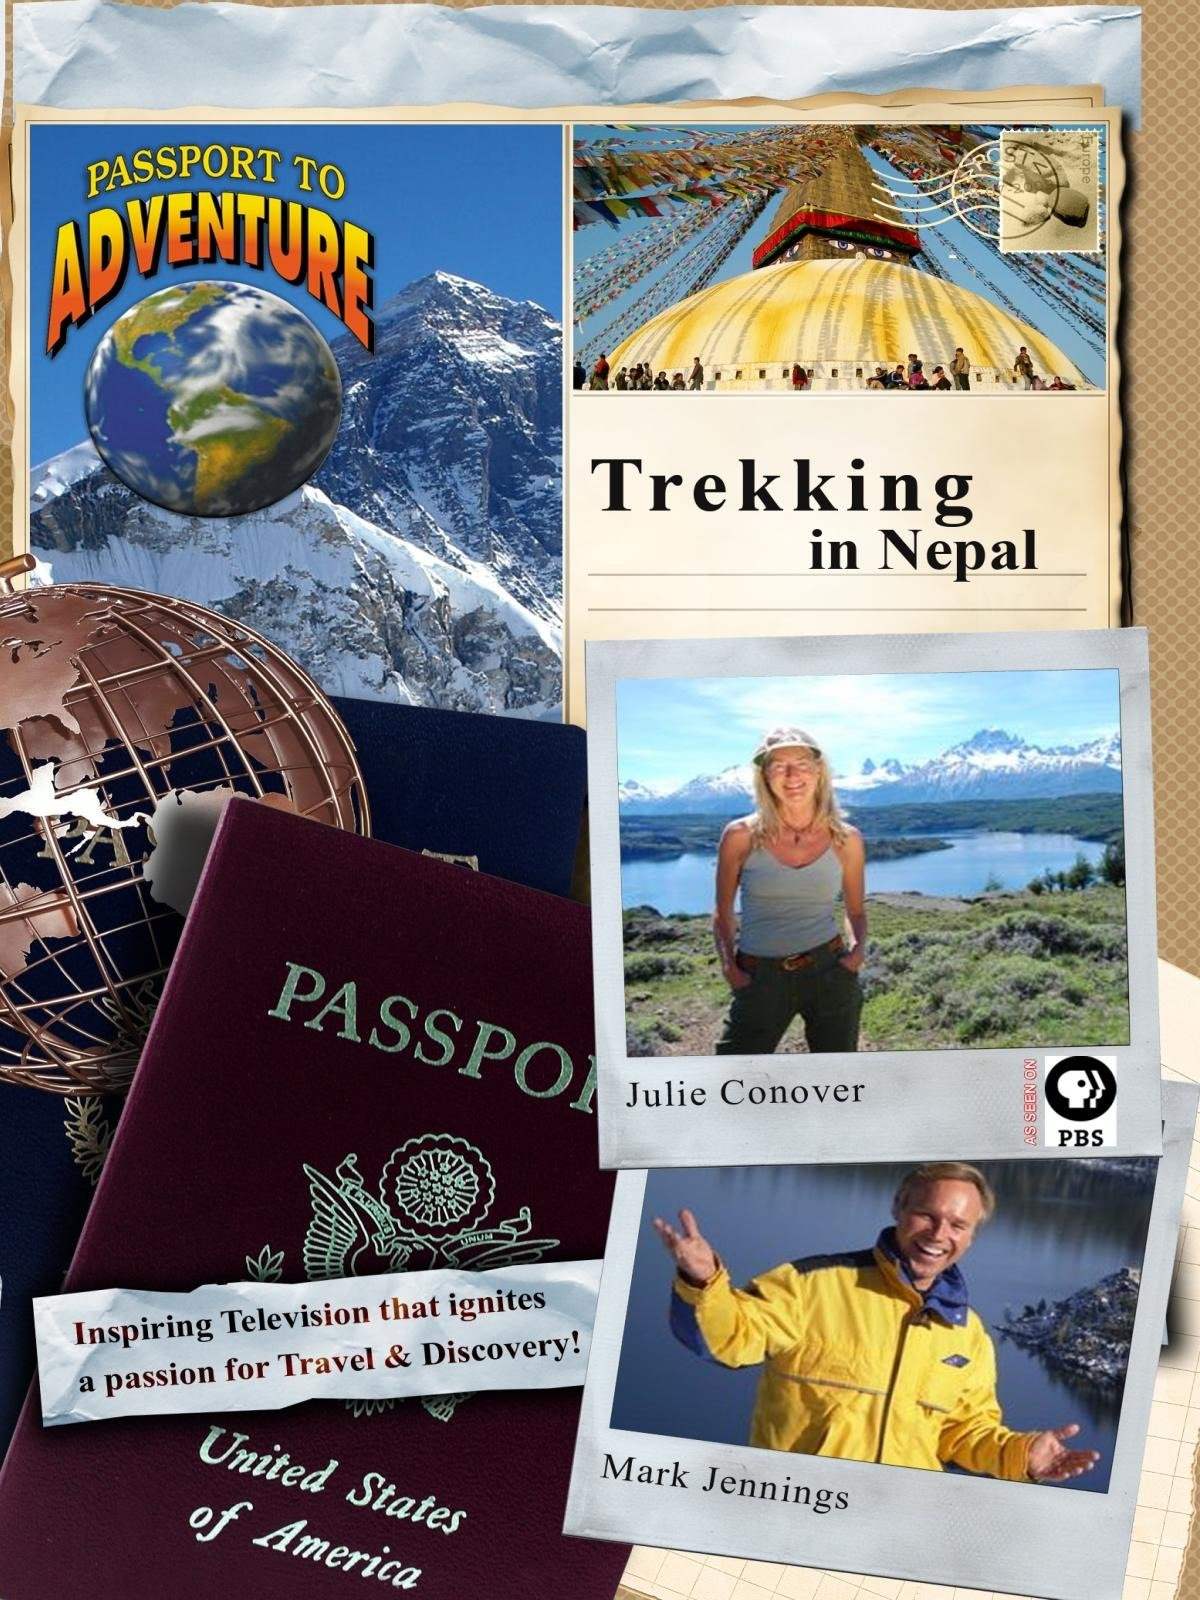 Passport to Adventure: Trekking in Nepal